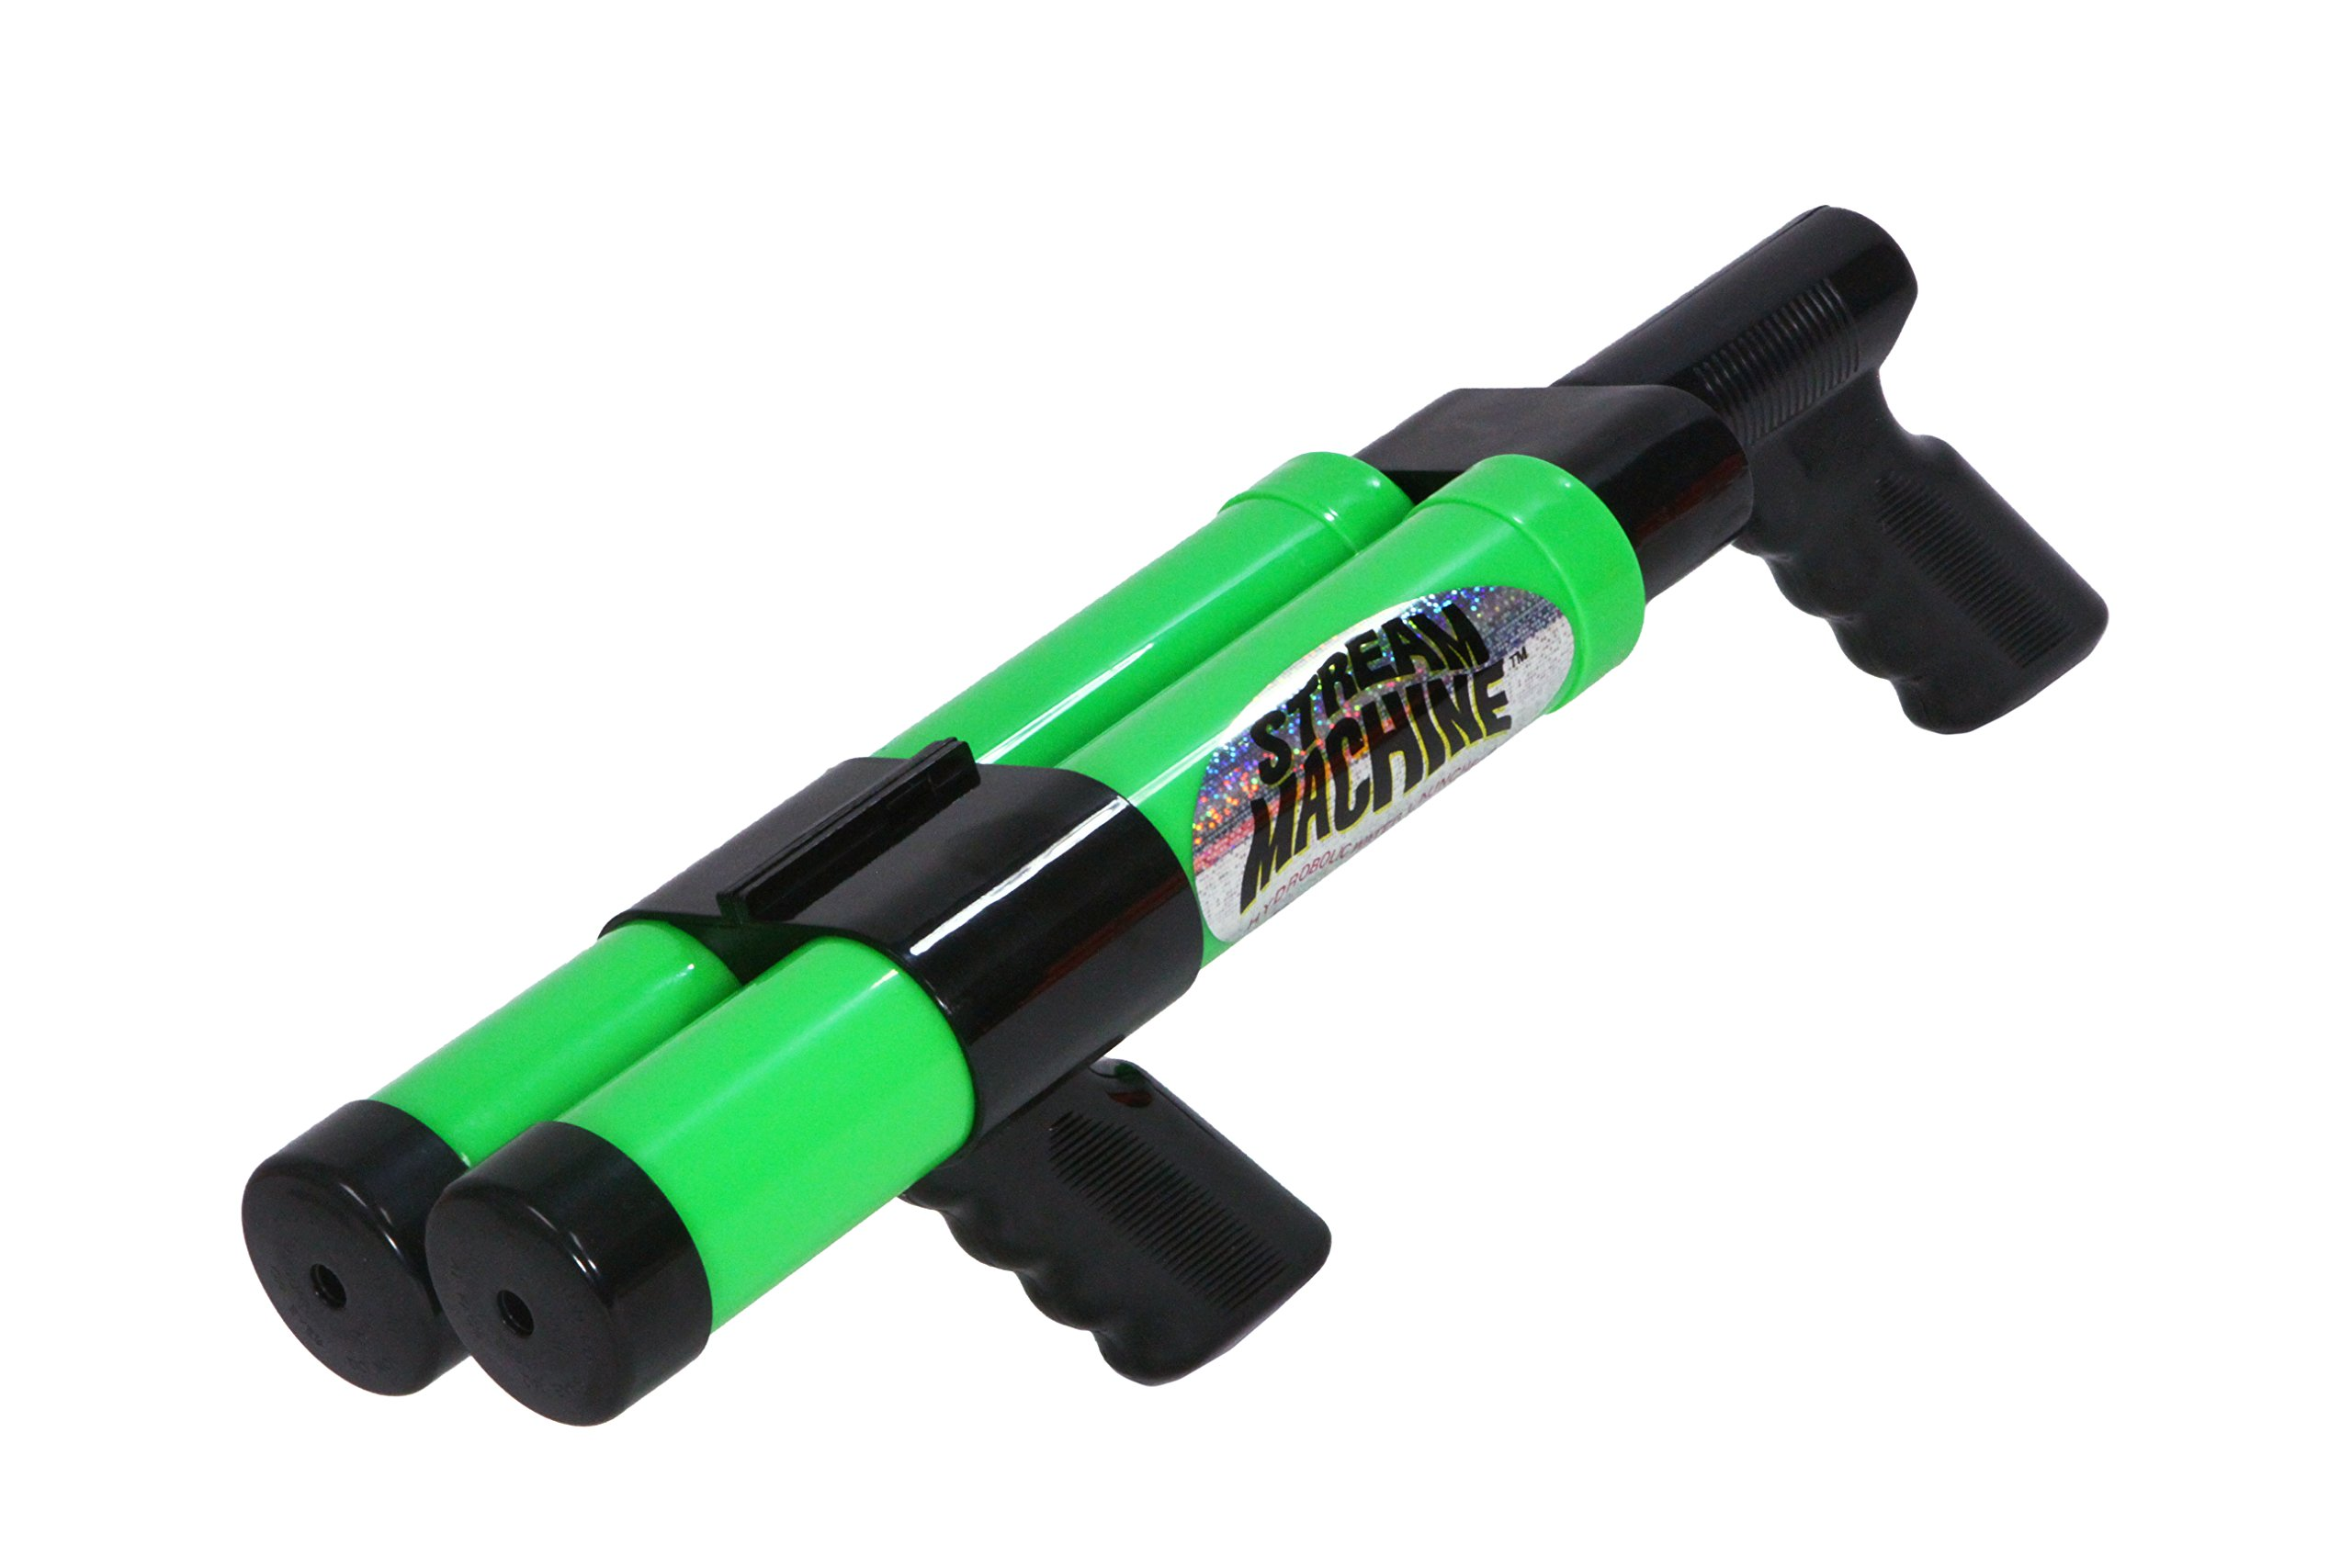 Stream Machine Water Cannon Squirt Gun Soaker Water Launcher Swimming Pool Toy (Color May Vary), DB-1200 (Double Barrel)